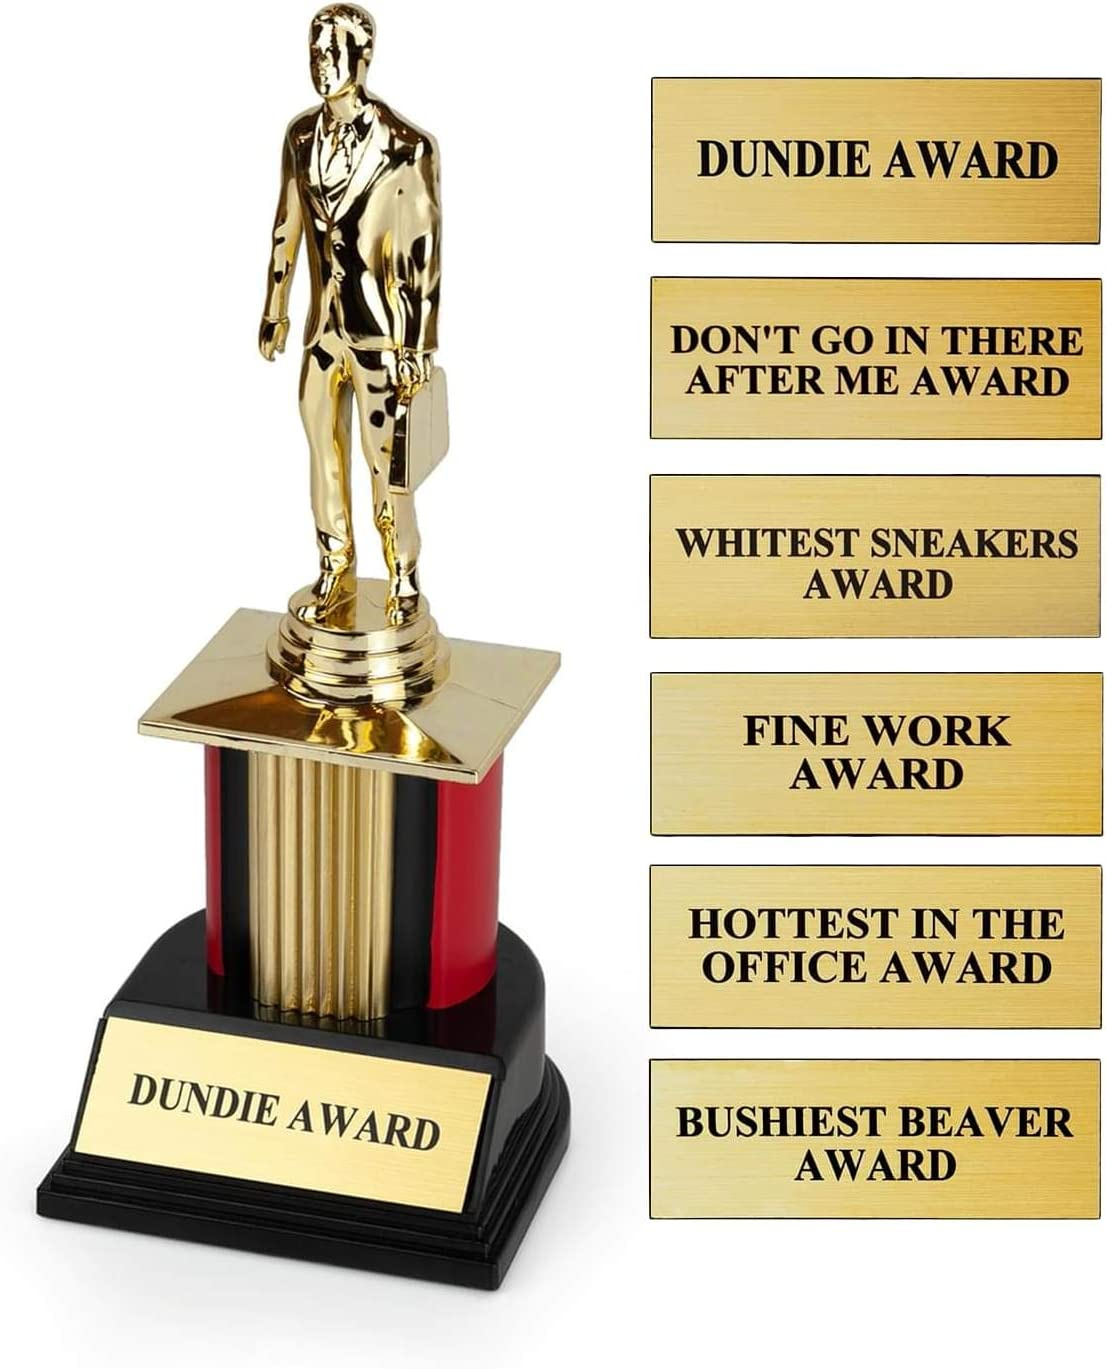 The Office Dundie Award Replica Trophy | Host Your Own The Office Dundies Awards Ceremony | Includes 6 Interchangeable Title Plates | Measures 8 Inches Tall